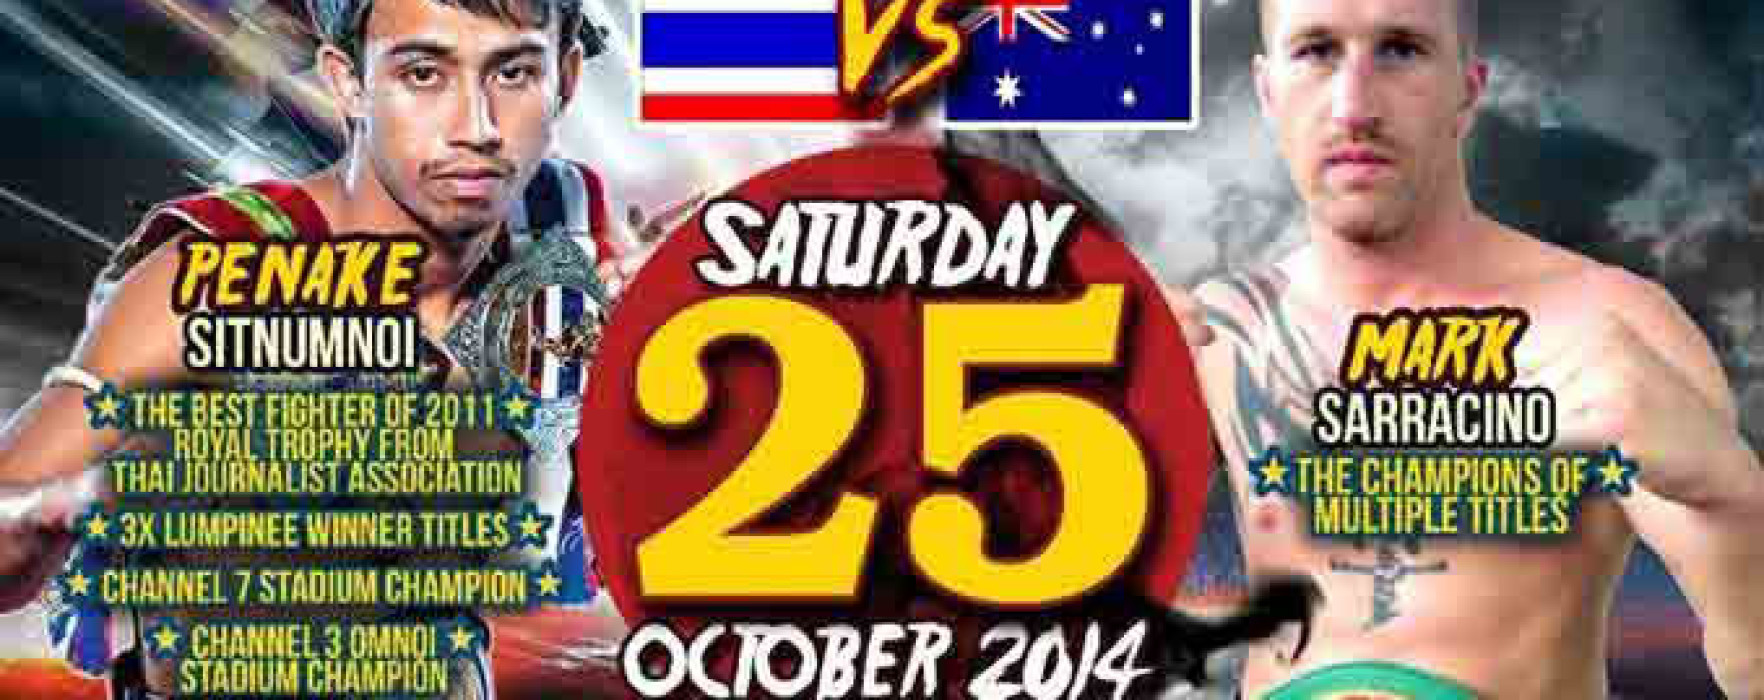 Flash News: Penake Sitnumnoi vs Mark Sarracino – Patong Boxing Stadium, Phuket – 25/10/2014